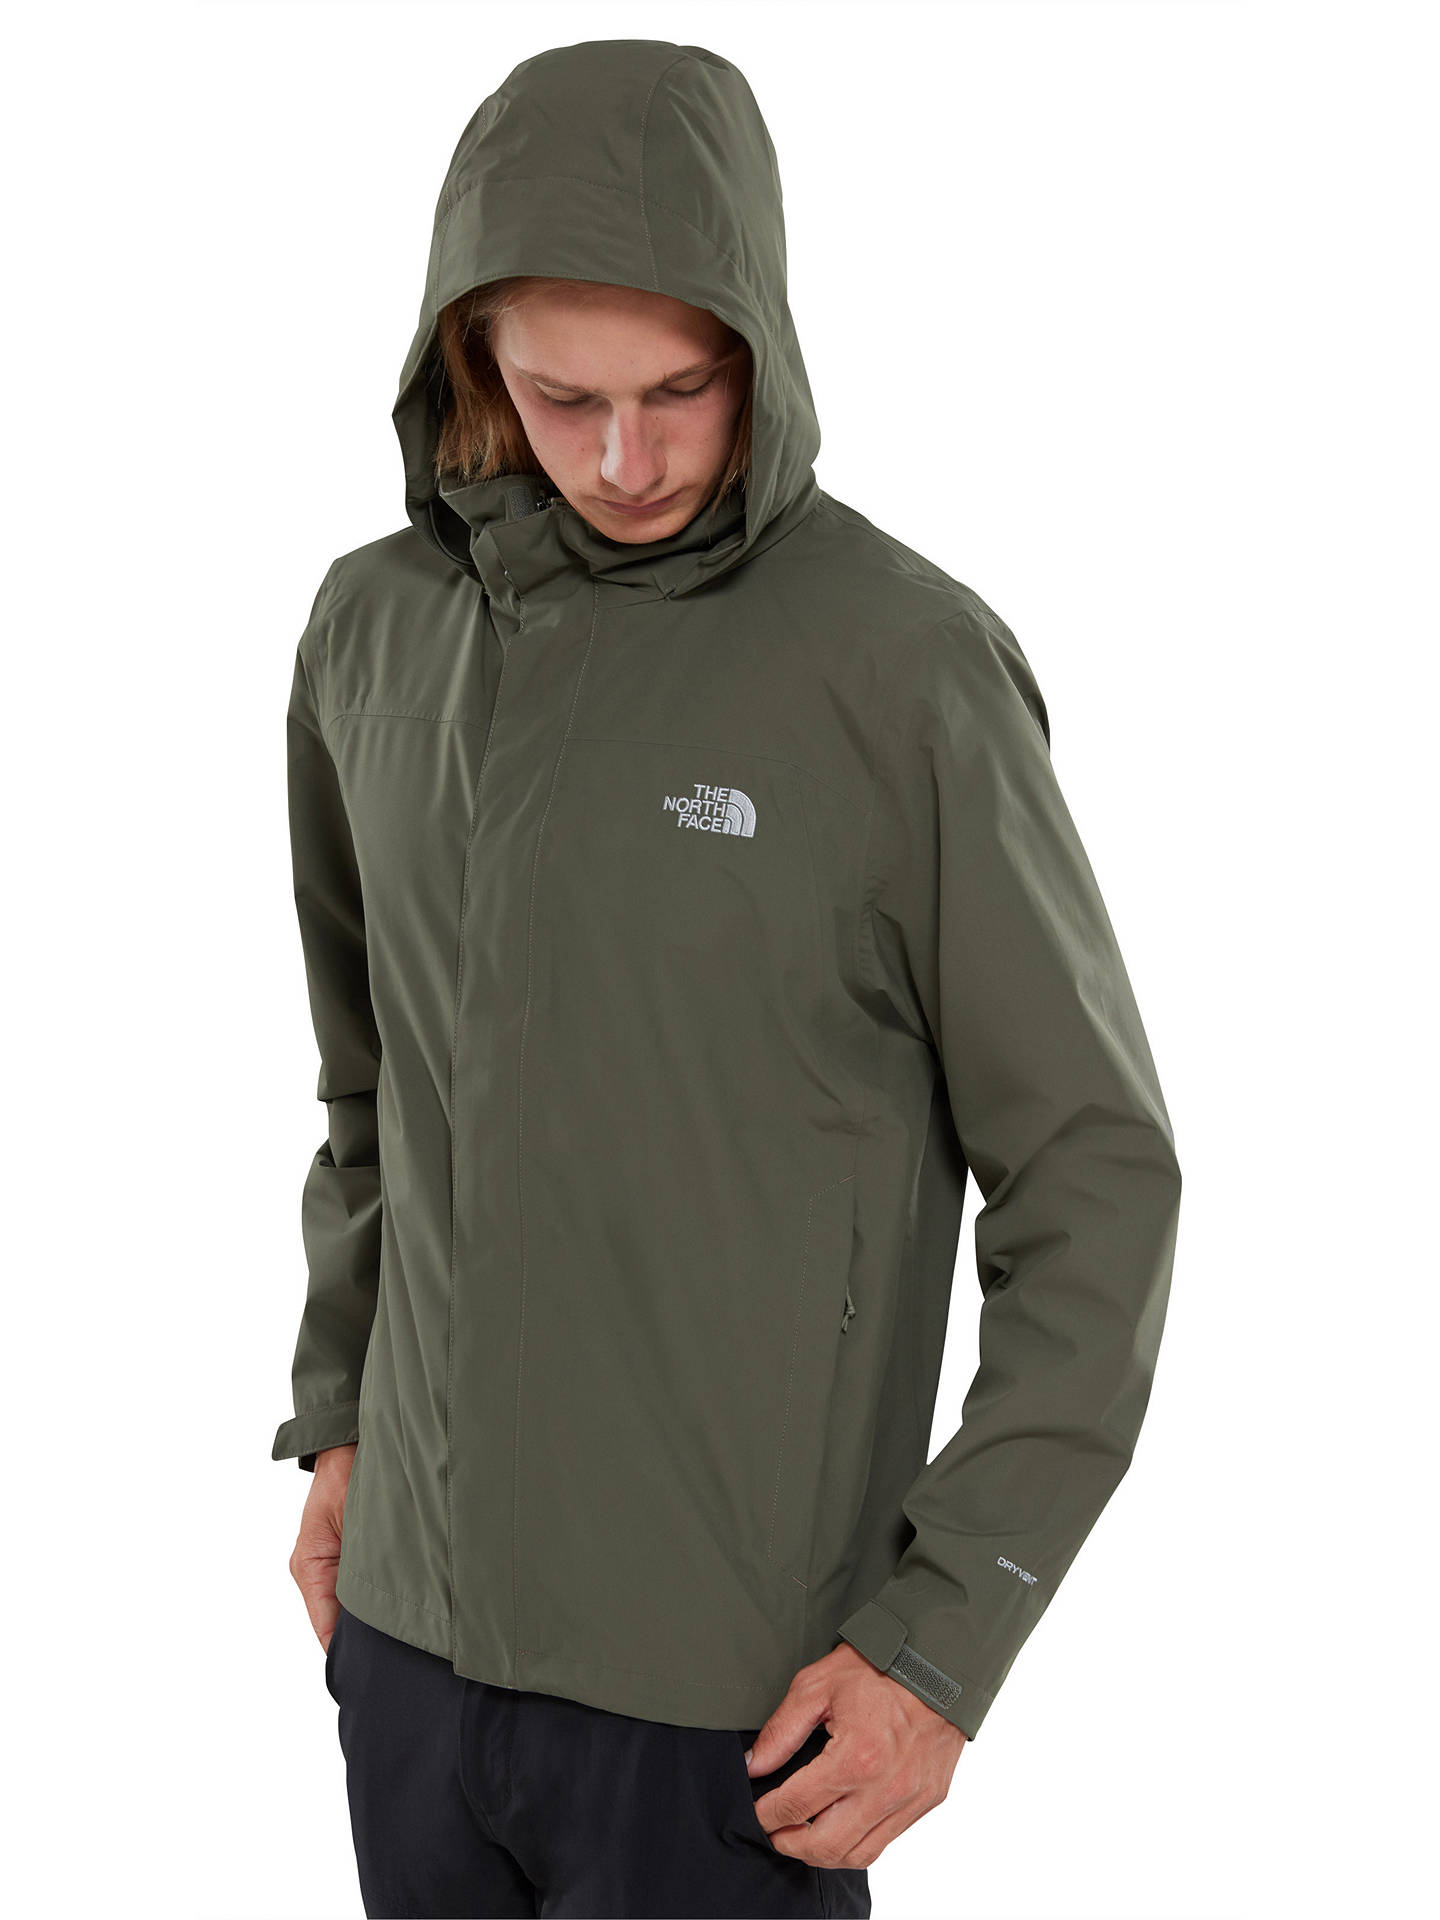 30a9211c778c Buy The North Face Sangro Men s Waterproof Jacket